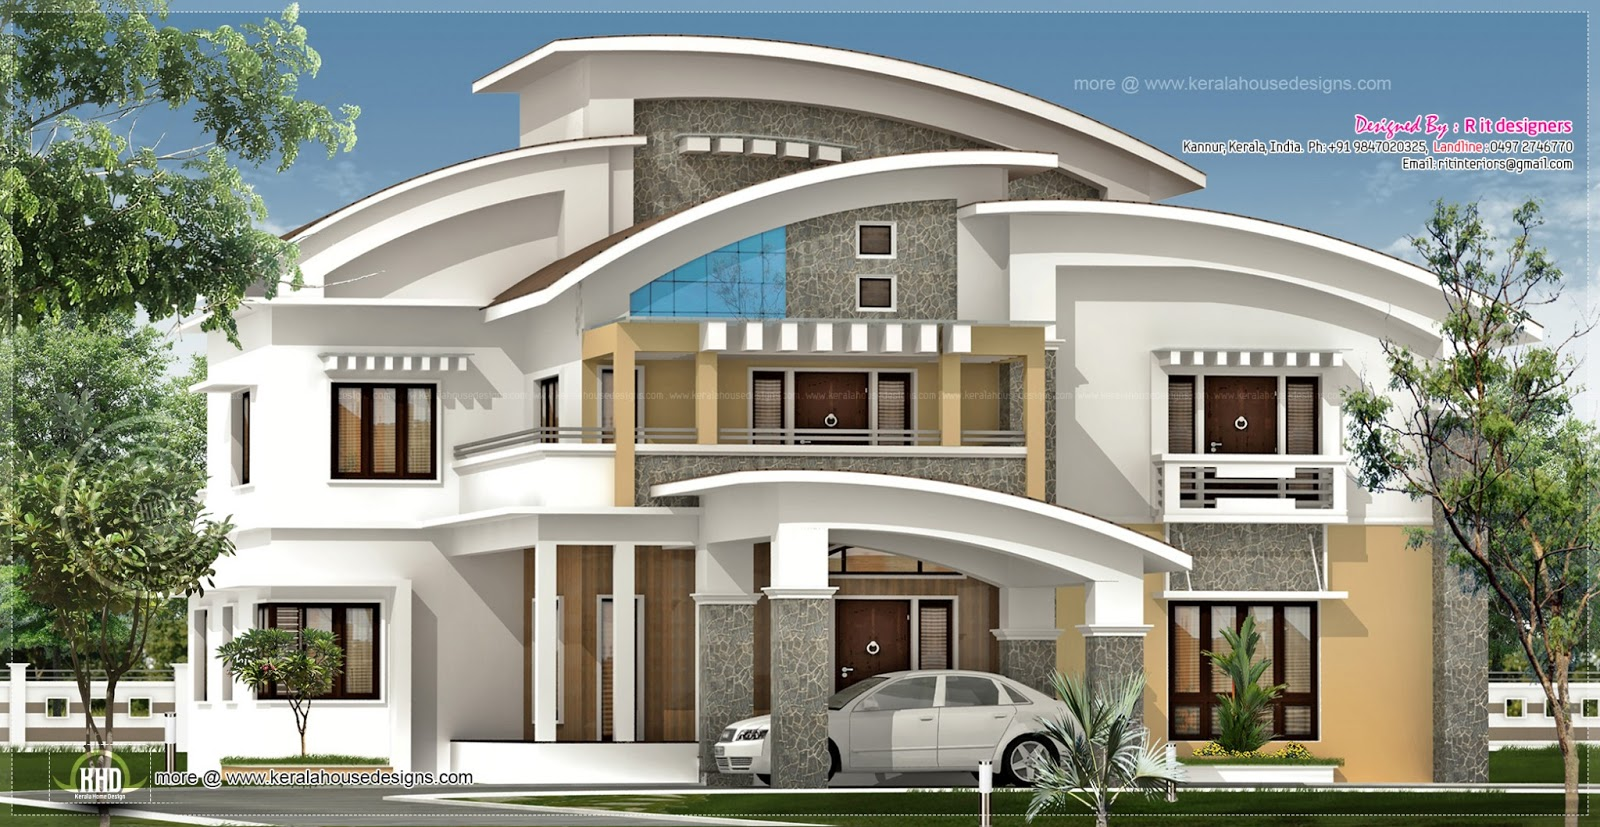 3750 square feet luxury villa exterior house design plans for Luxury style house plans